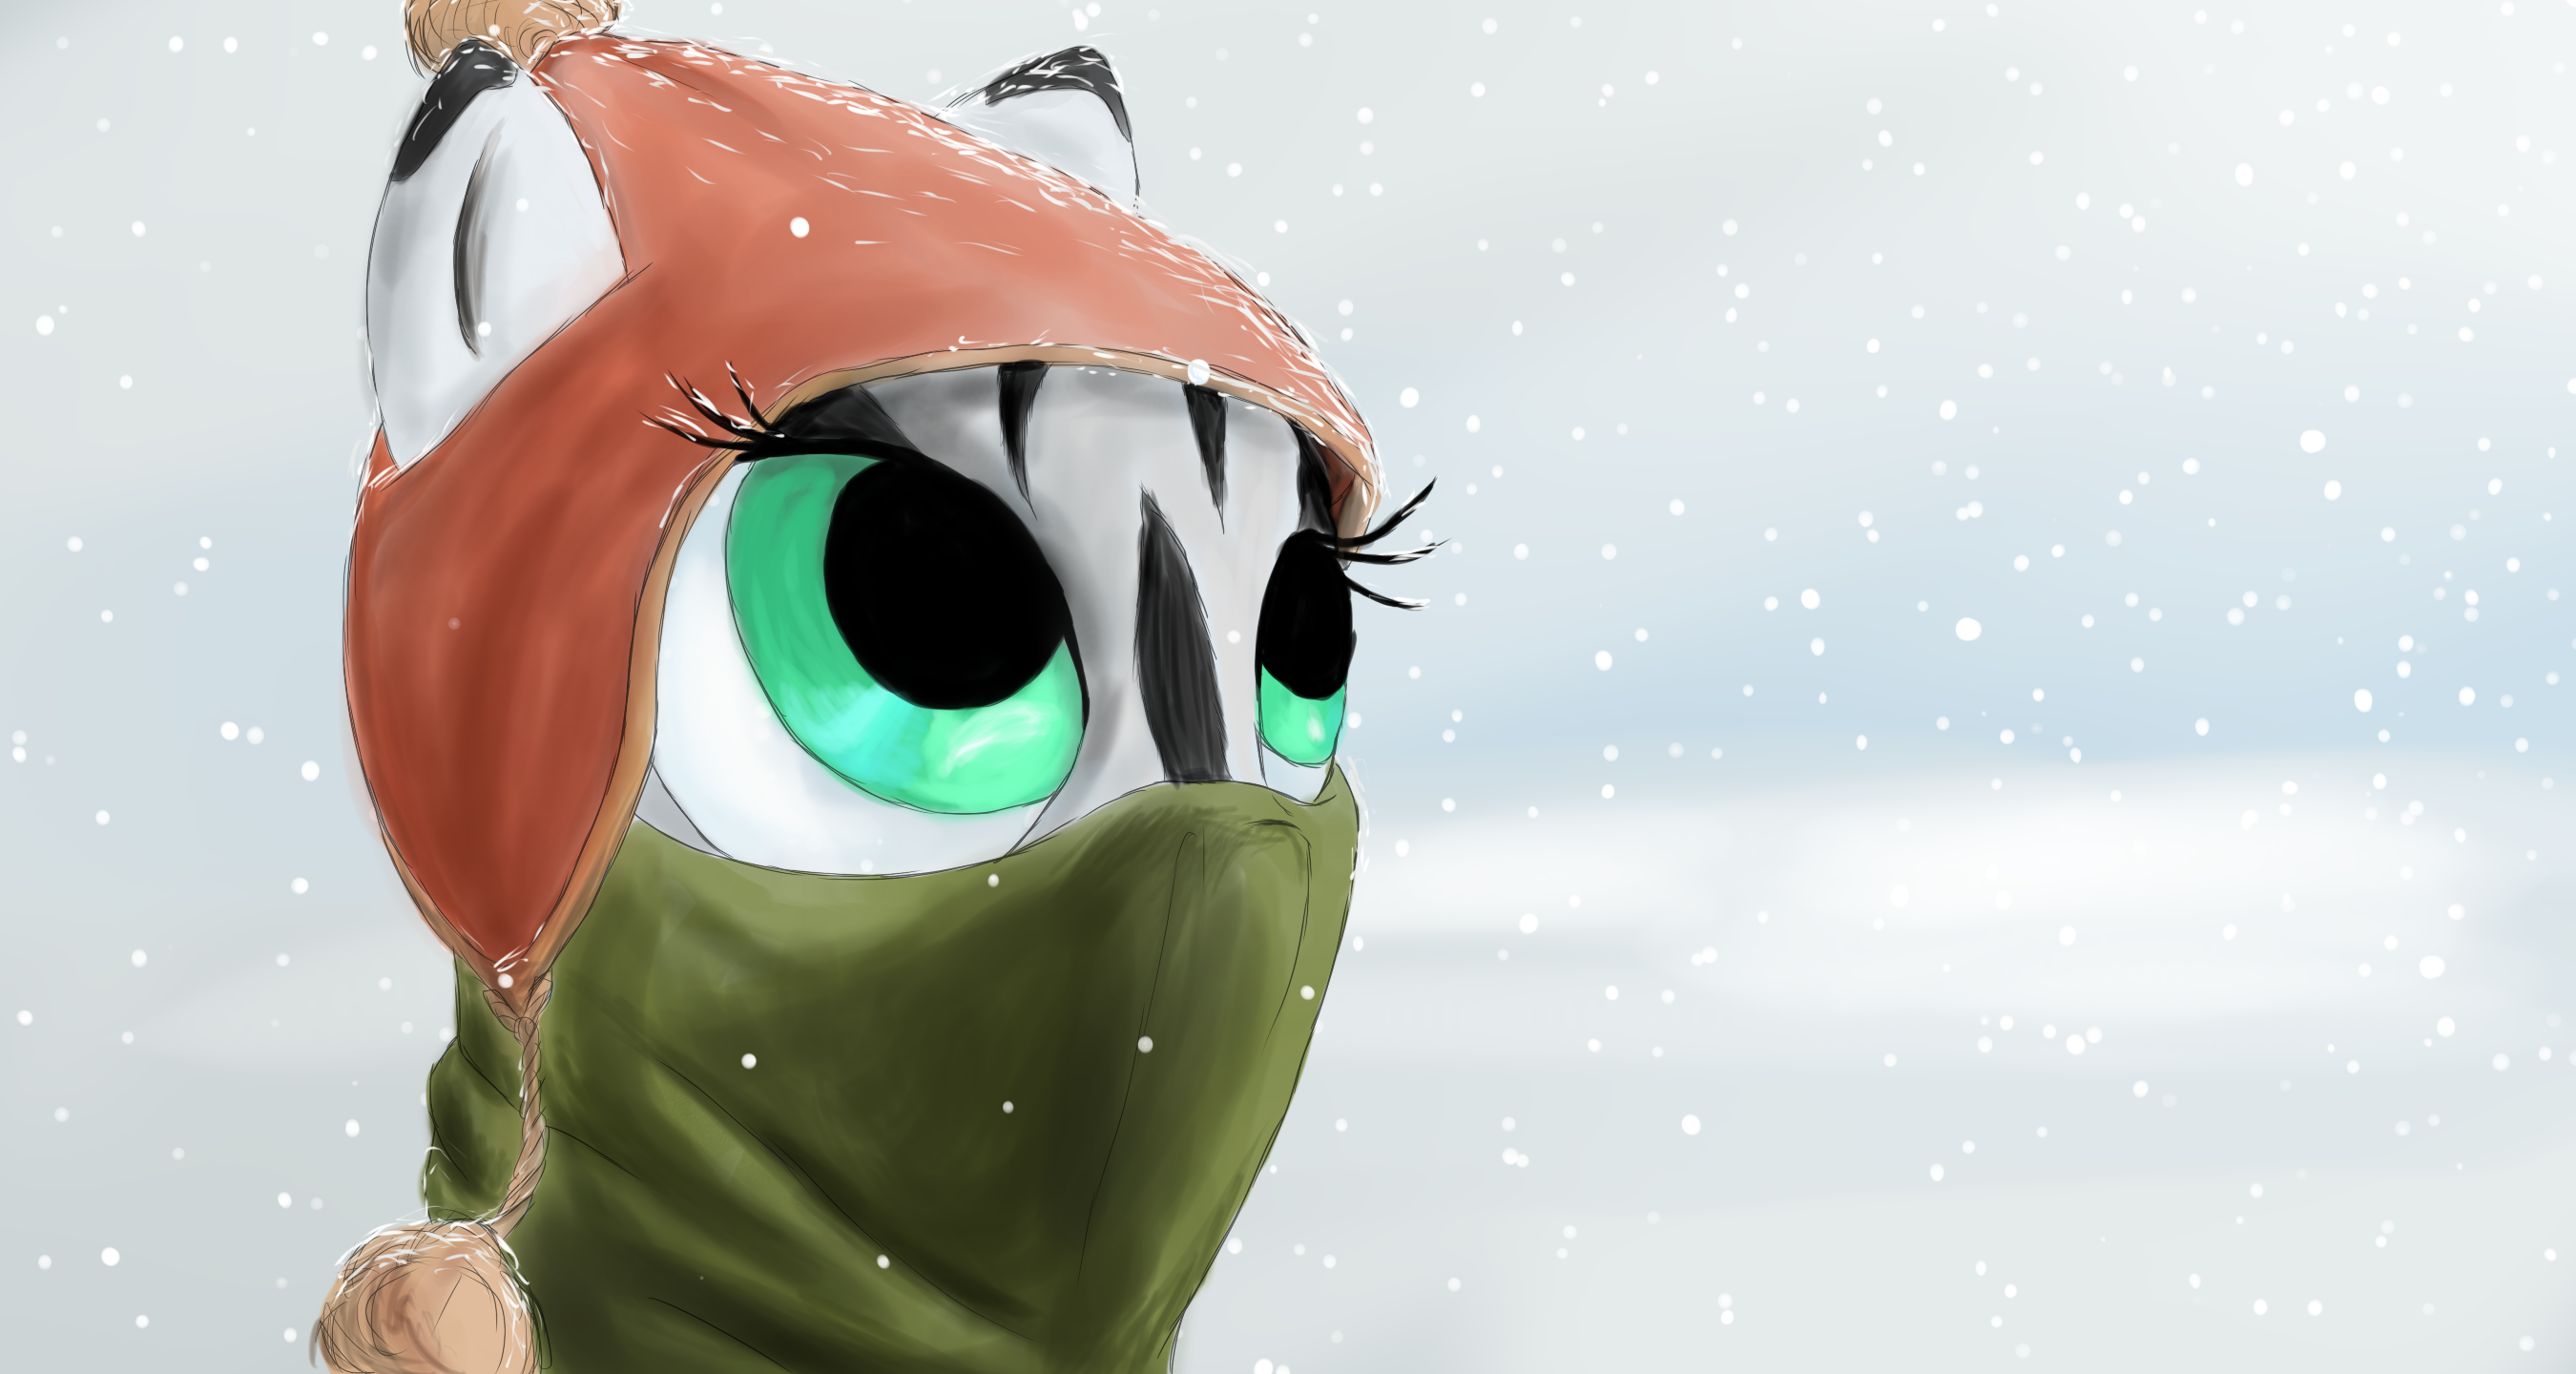 Snow by AaronMk